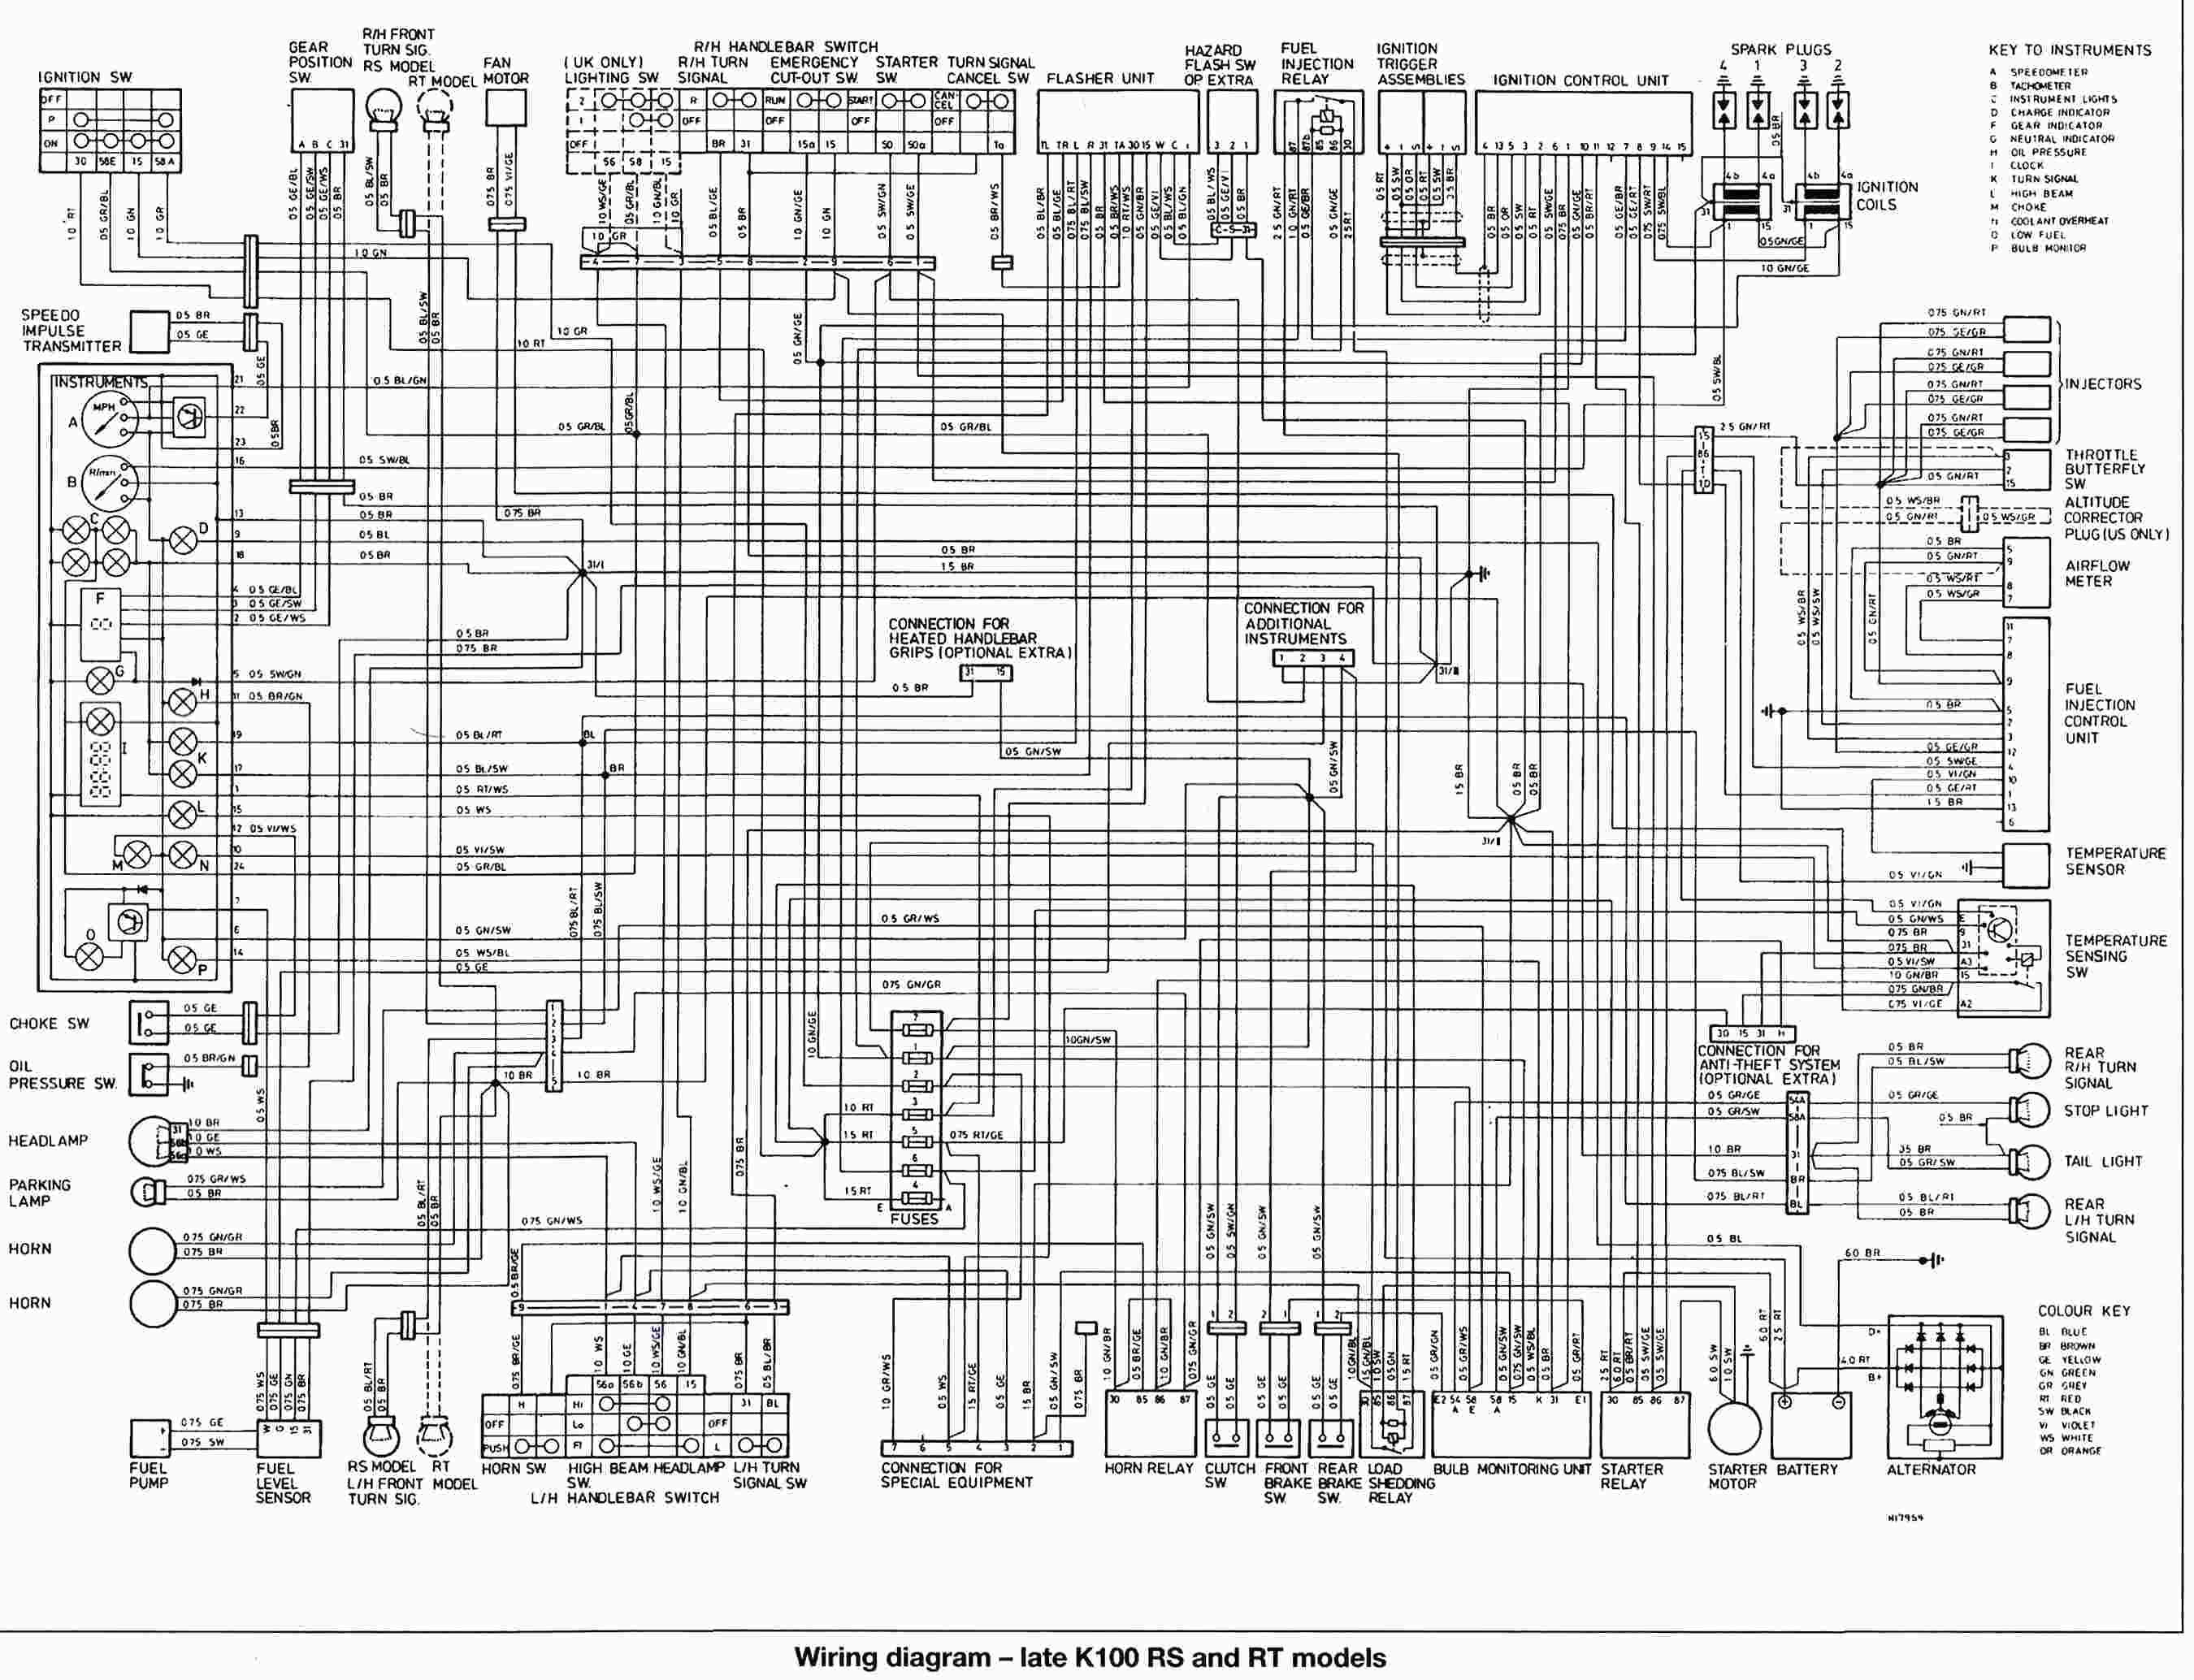 Bmw N52 Wiring Diagram | Wiring Diagram - Bmw Wiring Diagram